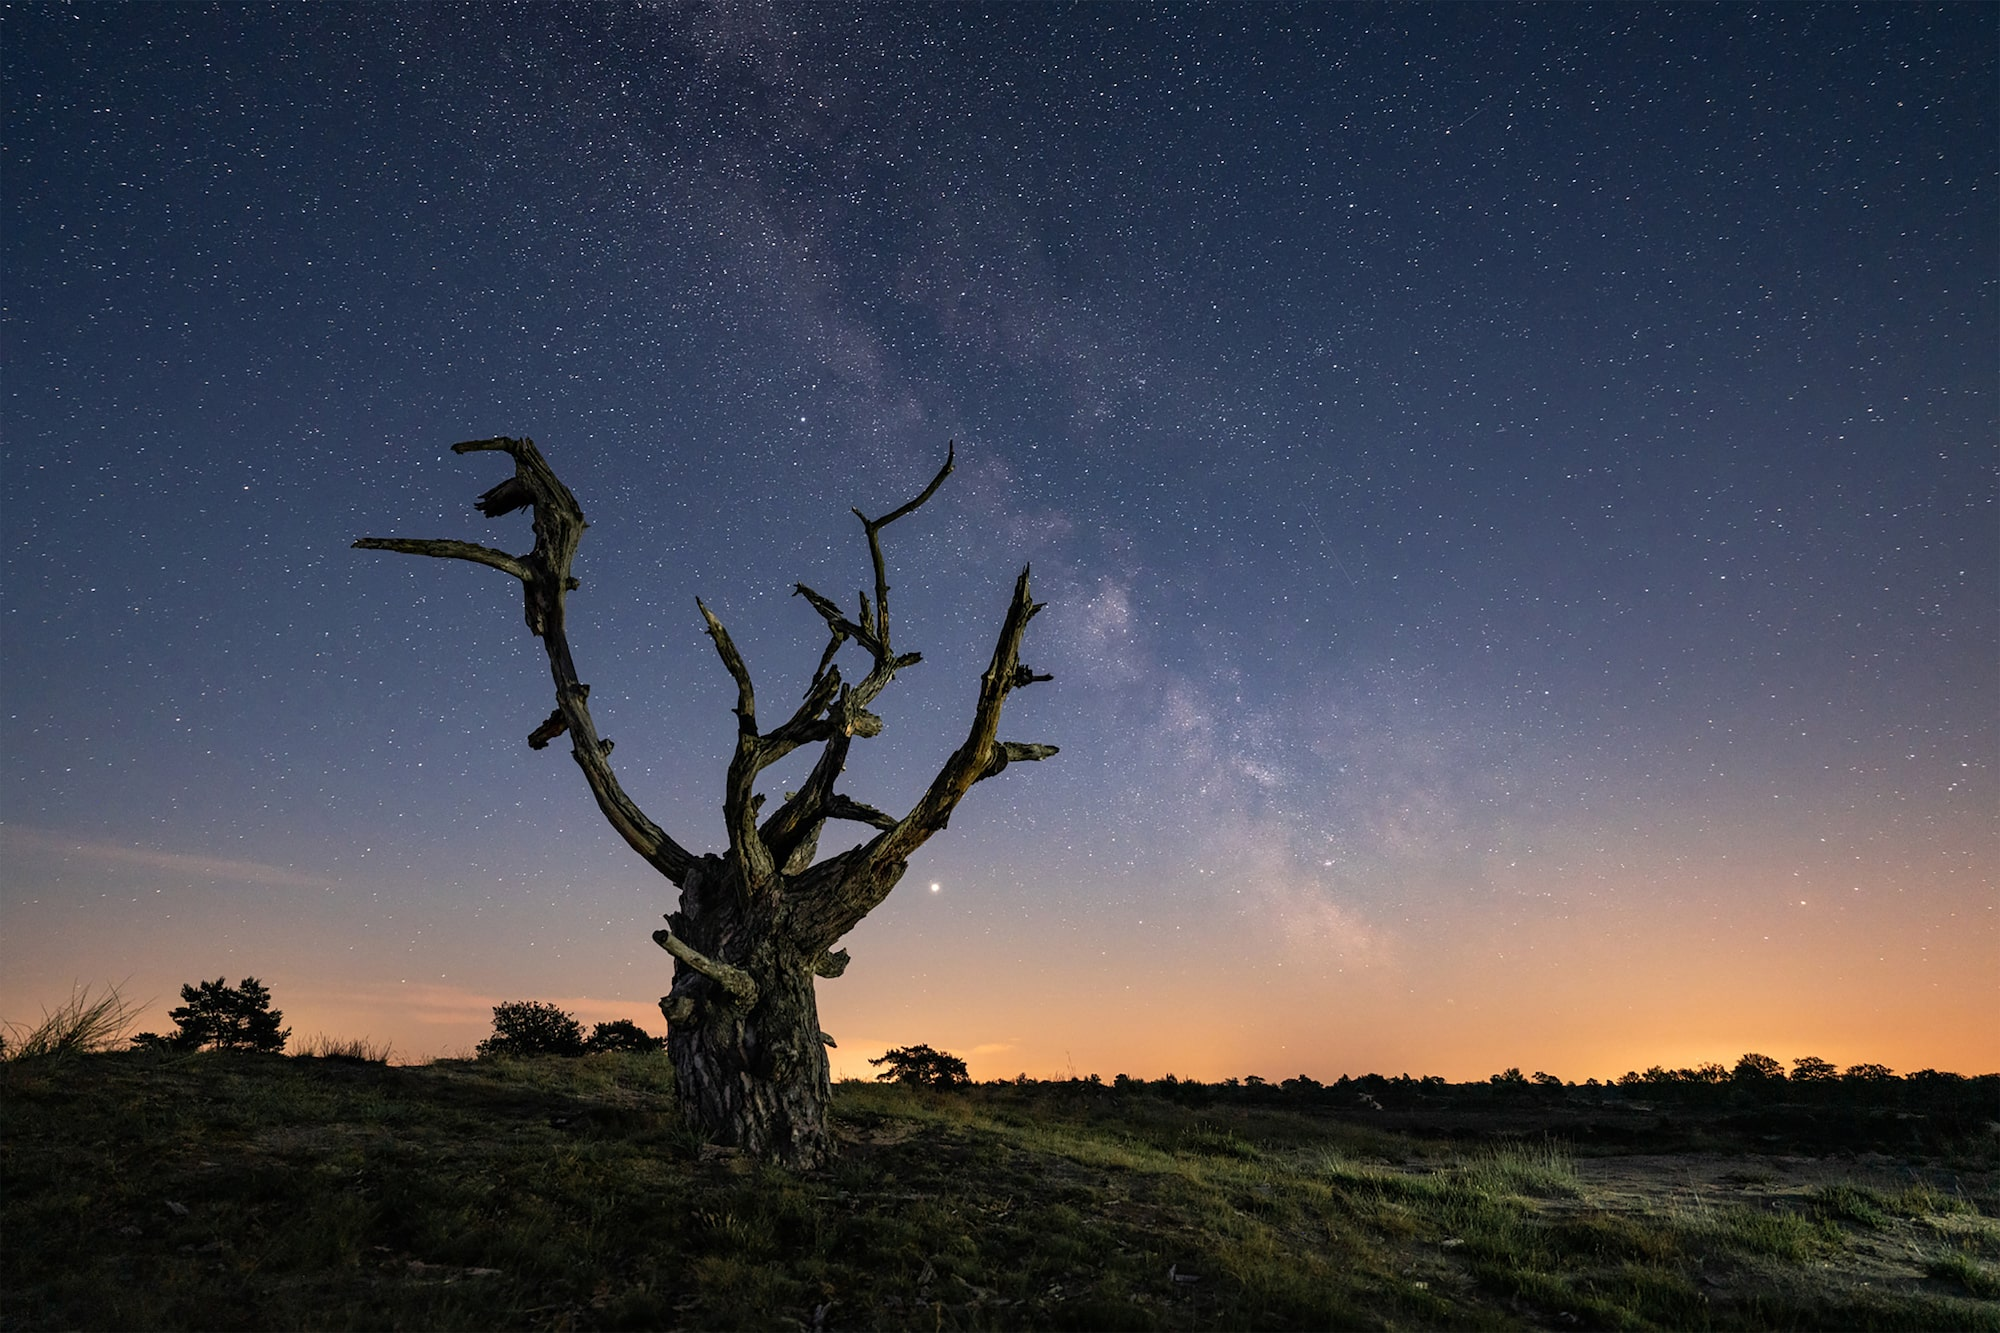 albert dros sony alpha 7RM4 the milky way visible in the sky above amsterdam with a dead tree in the foreground